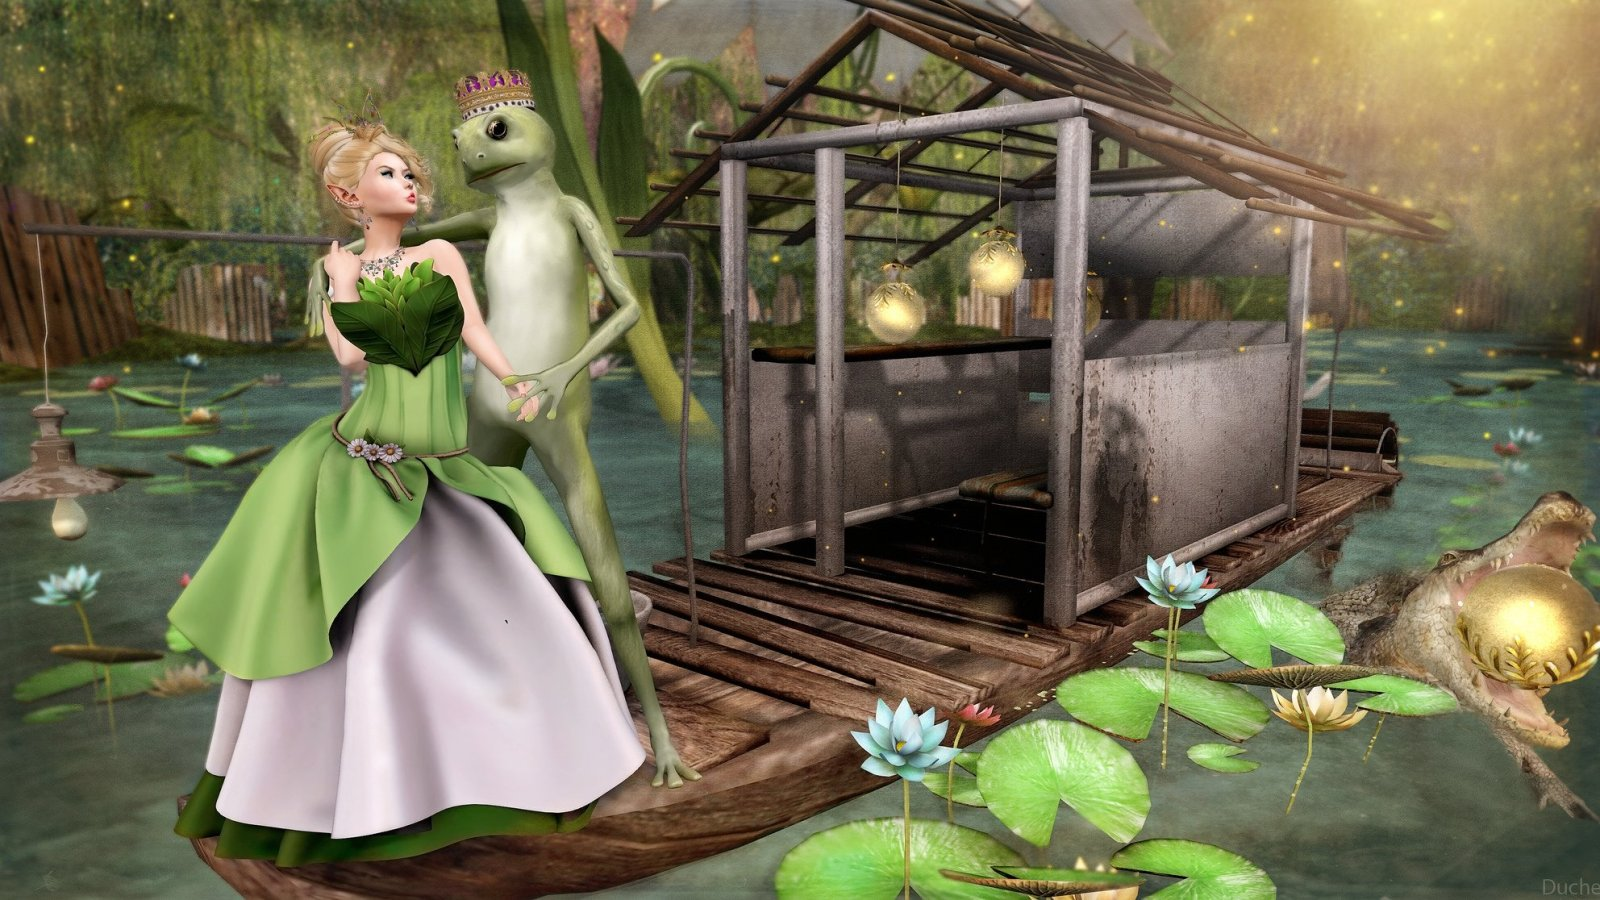 It was not a kiss that changed the frog….